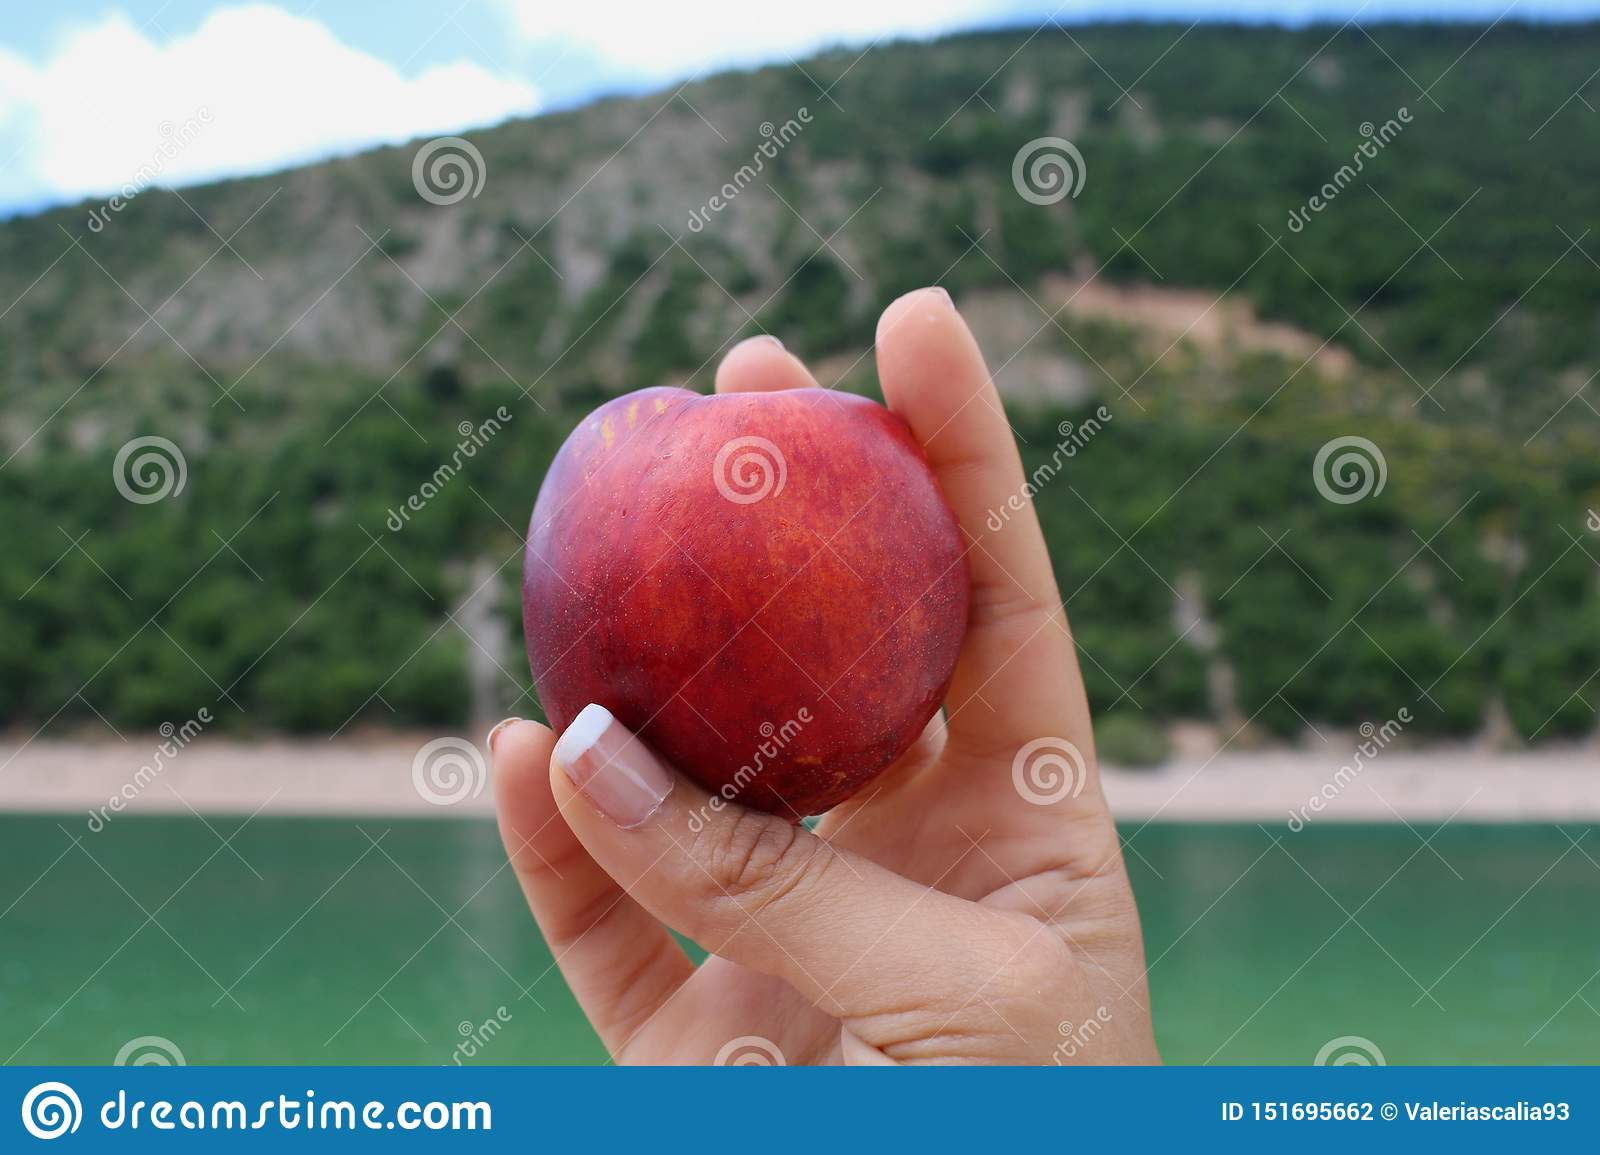 Peach in the hand by the lake